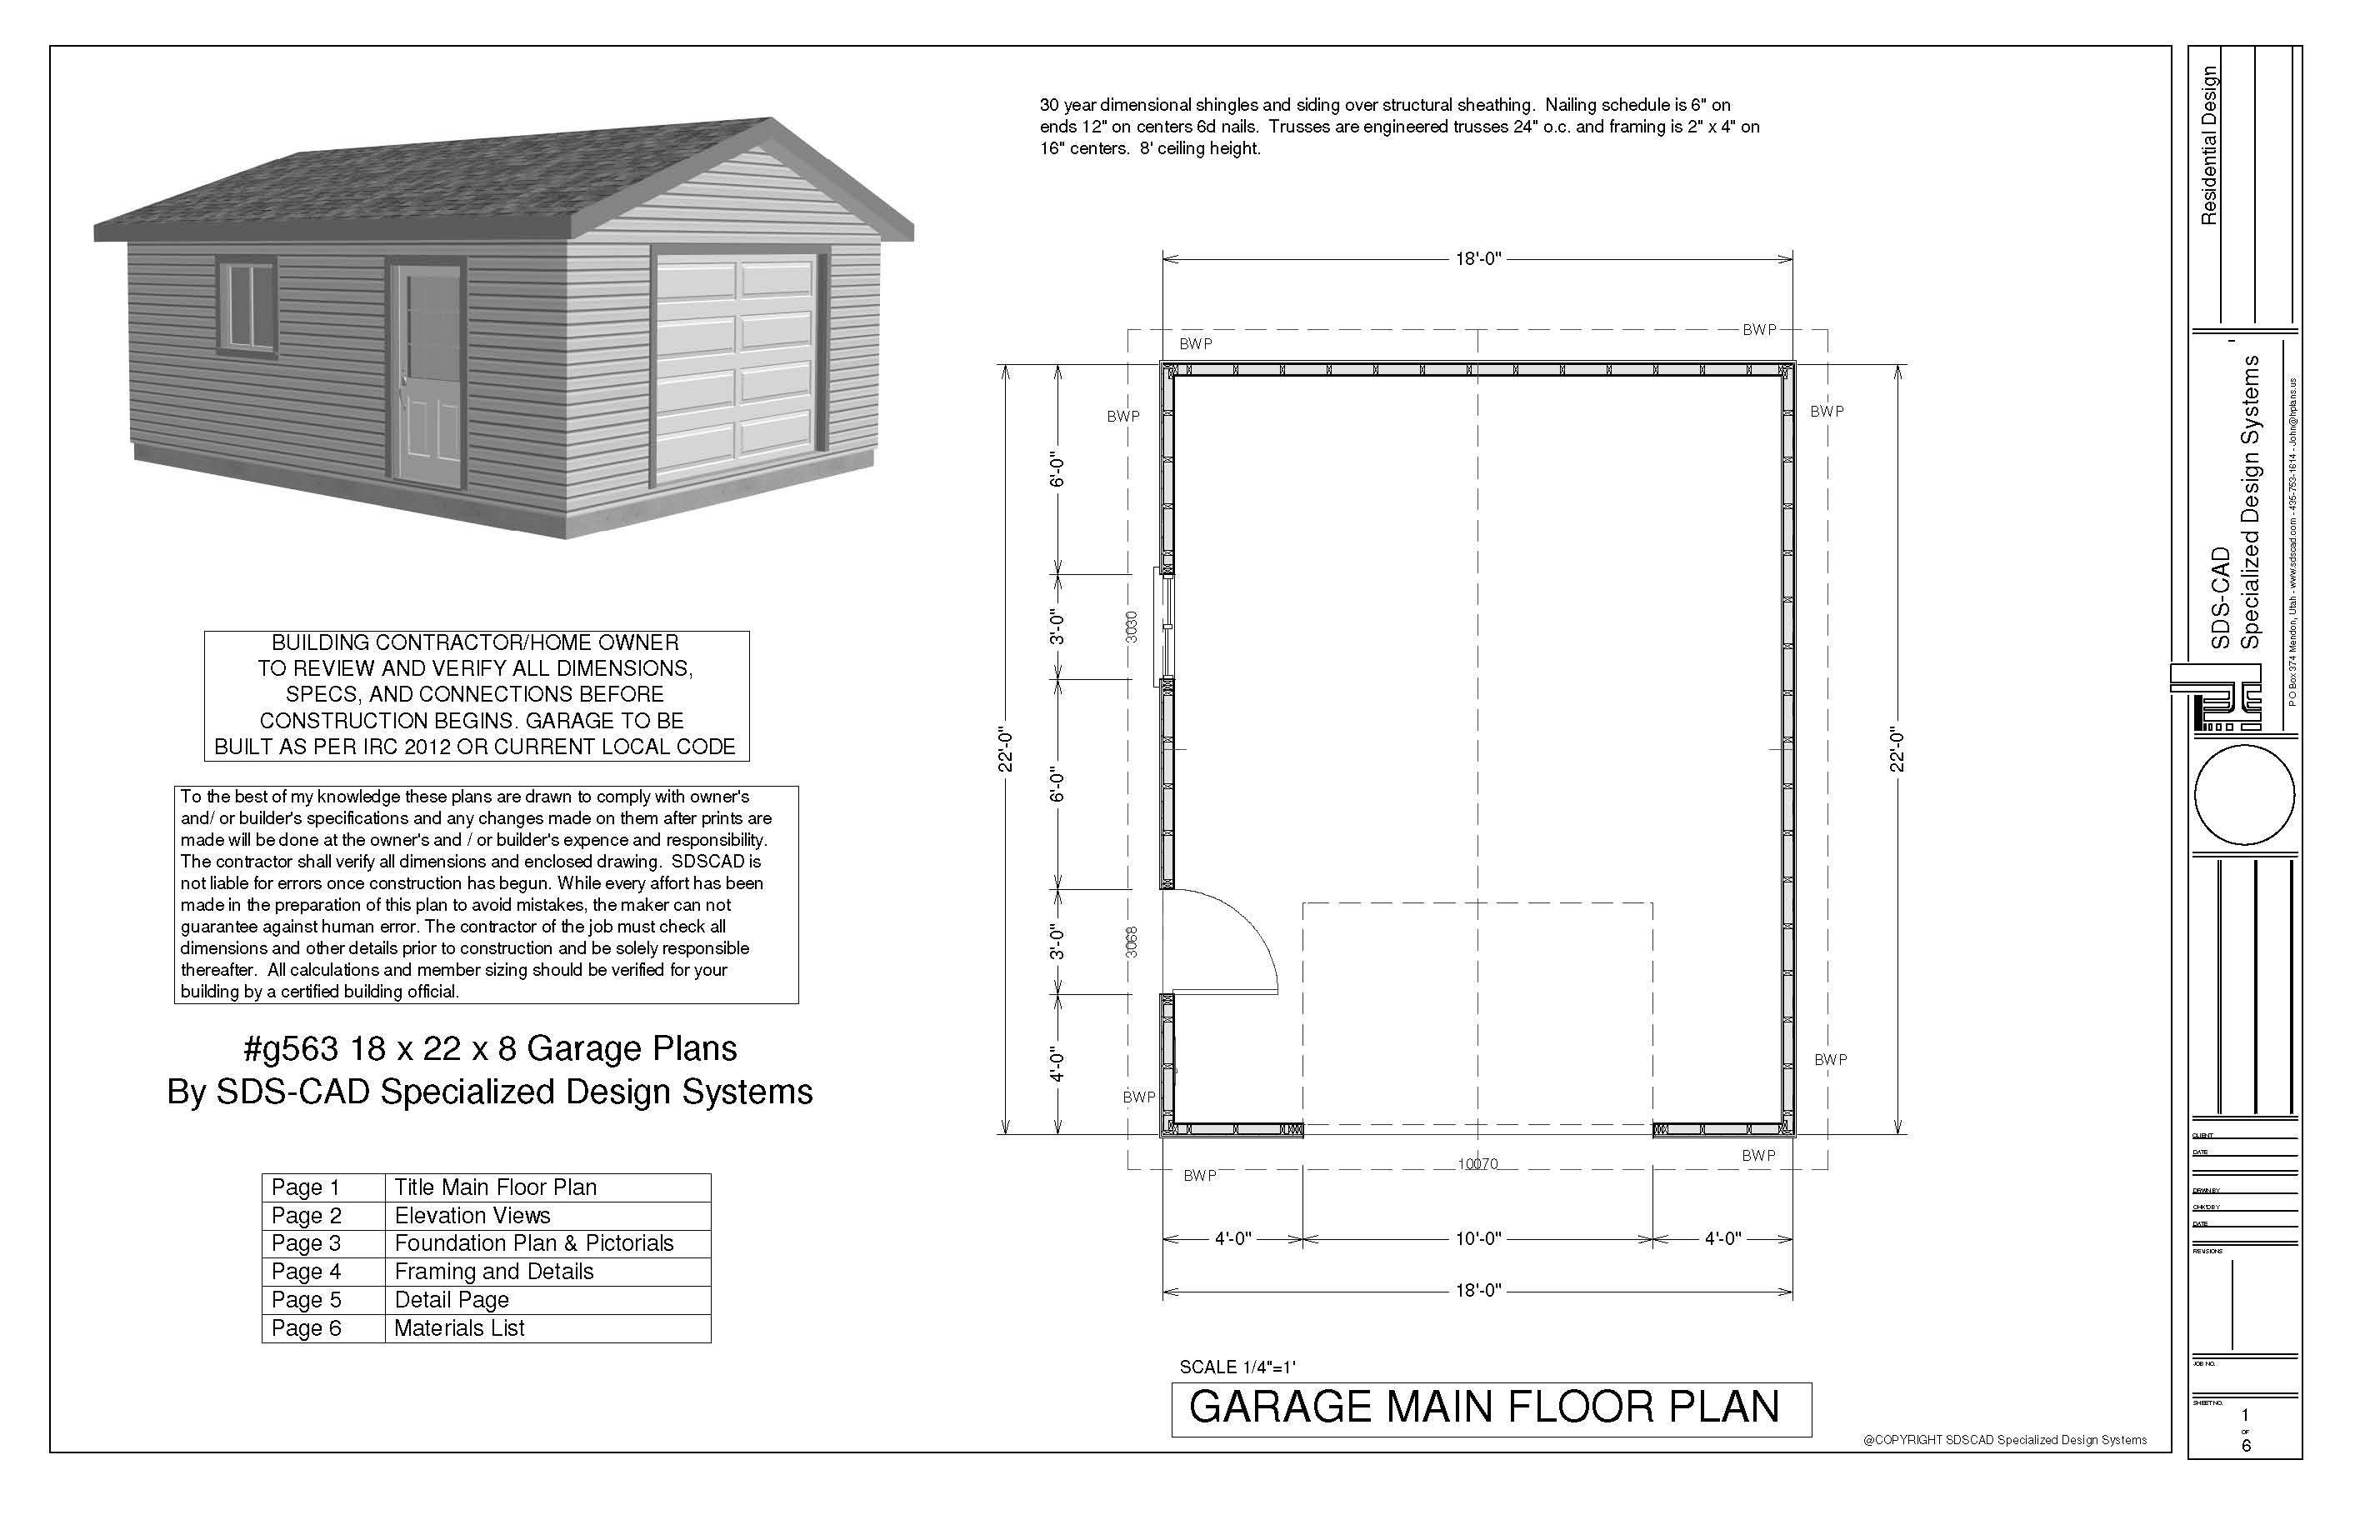 Download free sample garage plan g563 18 x 22 x 8 garage for Free garage plans online